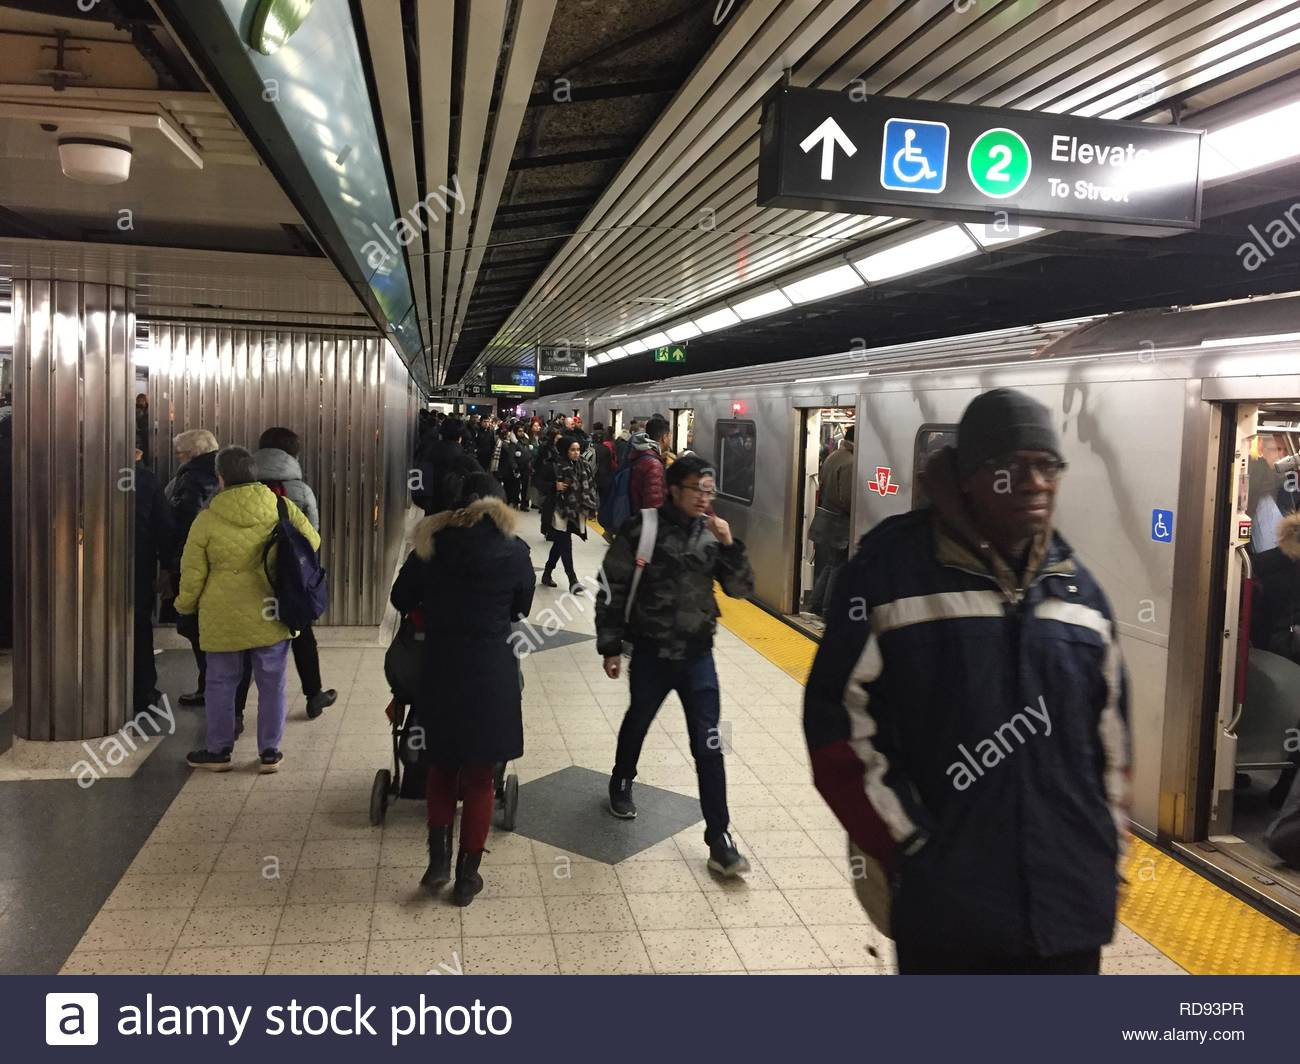 The crowded Bloor-Yonge TTC subway station in Toronto, Ontario, Canada. - Stock Image